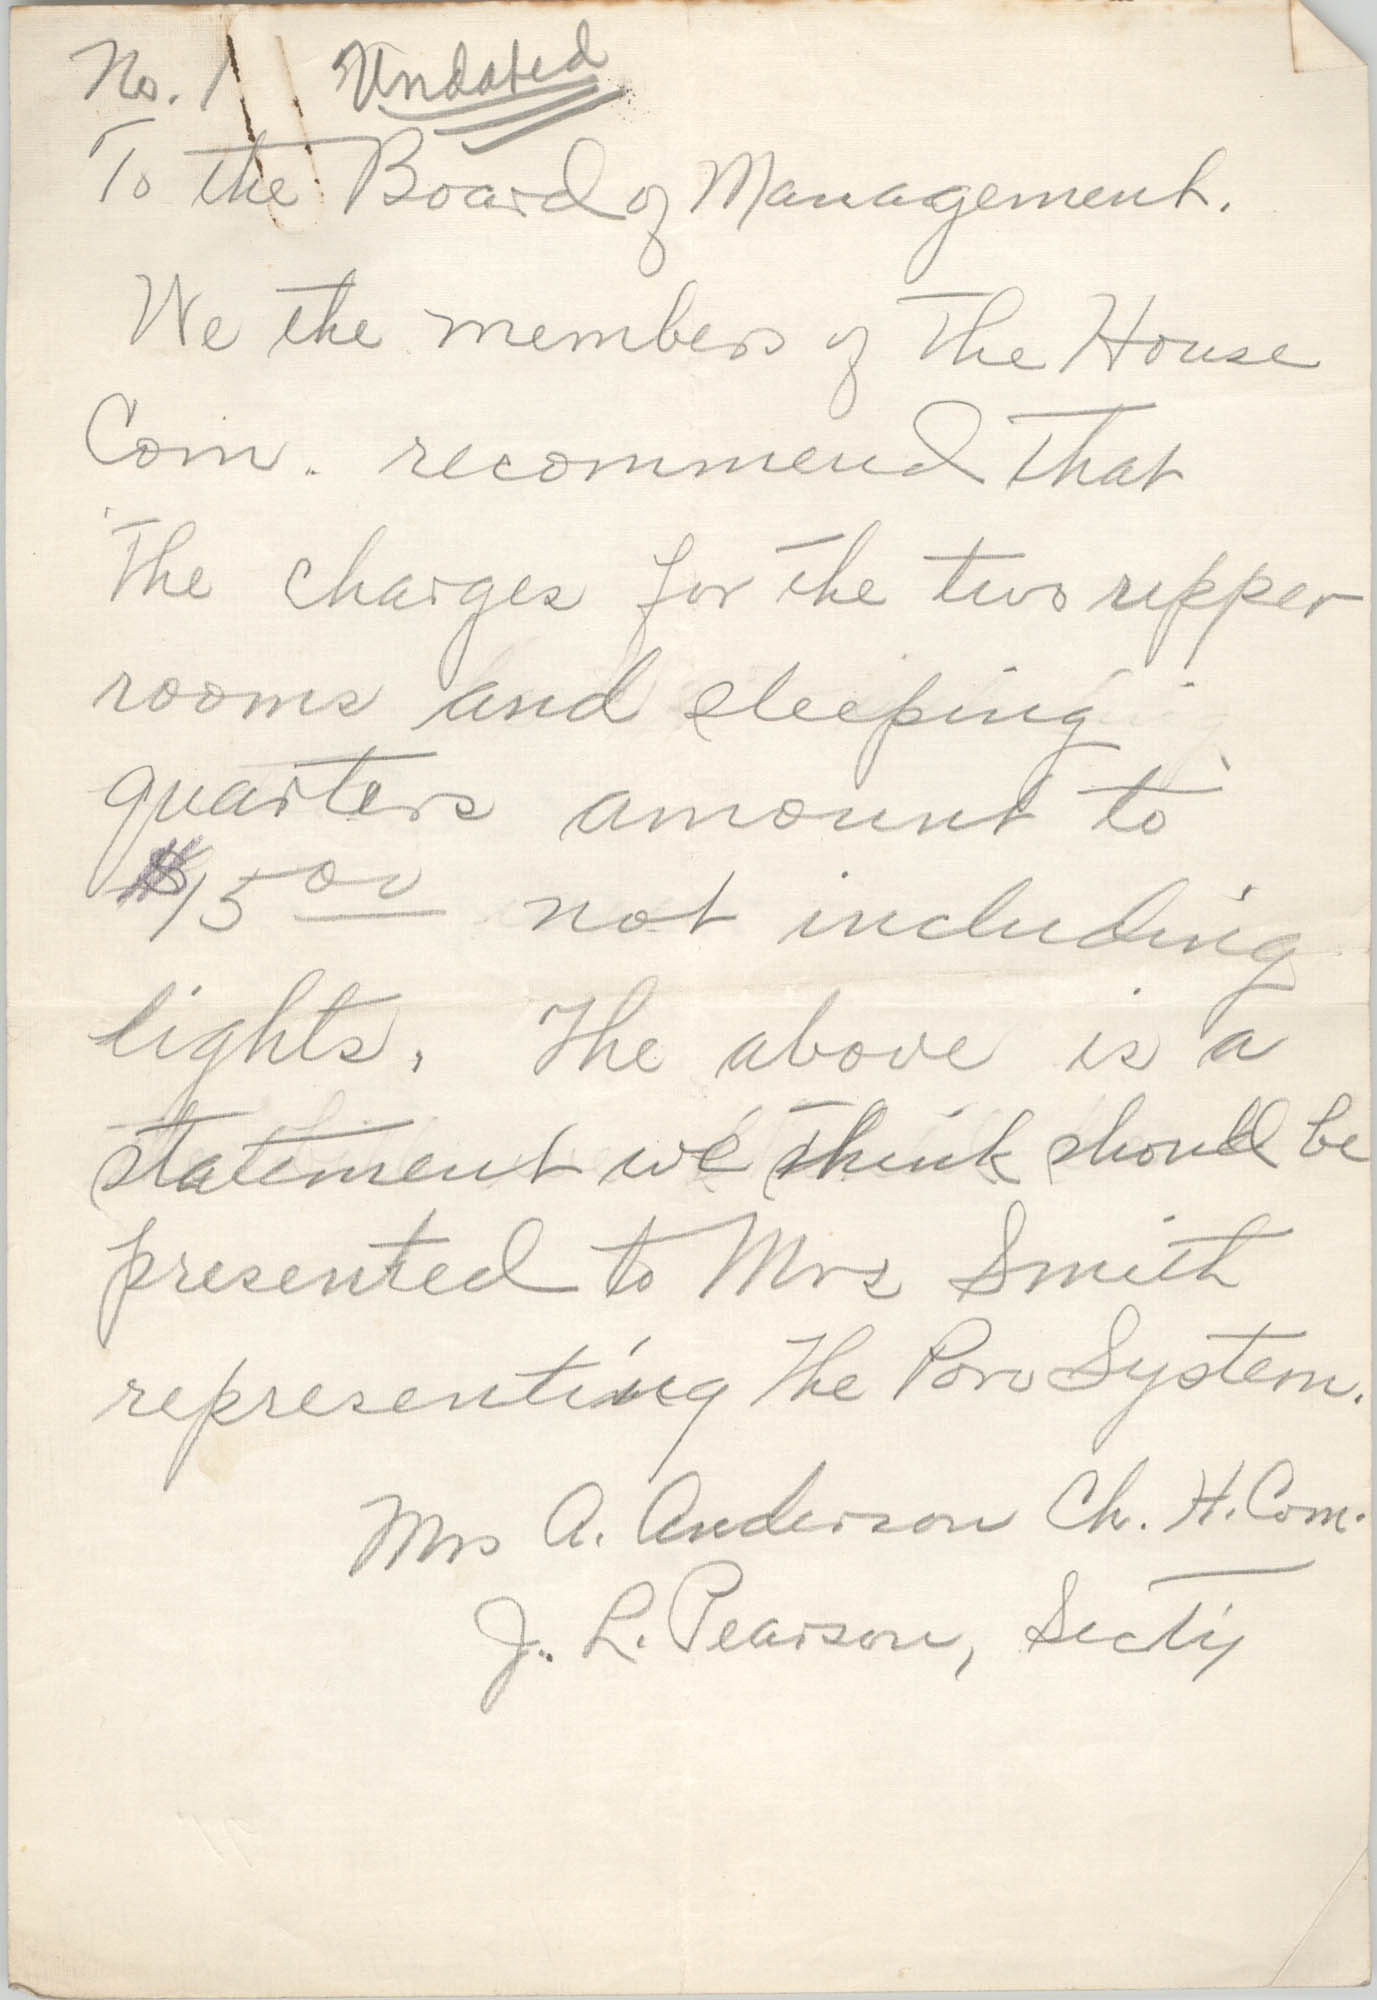 Letter from A. Anderson and J. L. Pearson to the Board of Management